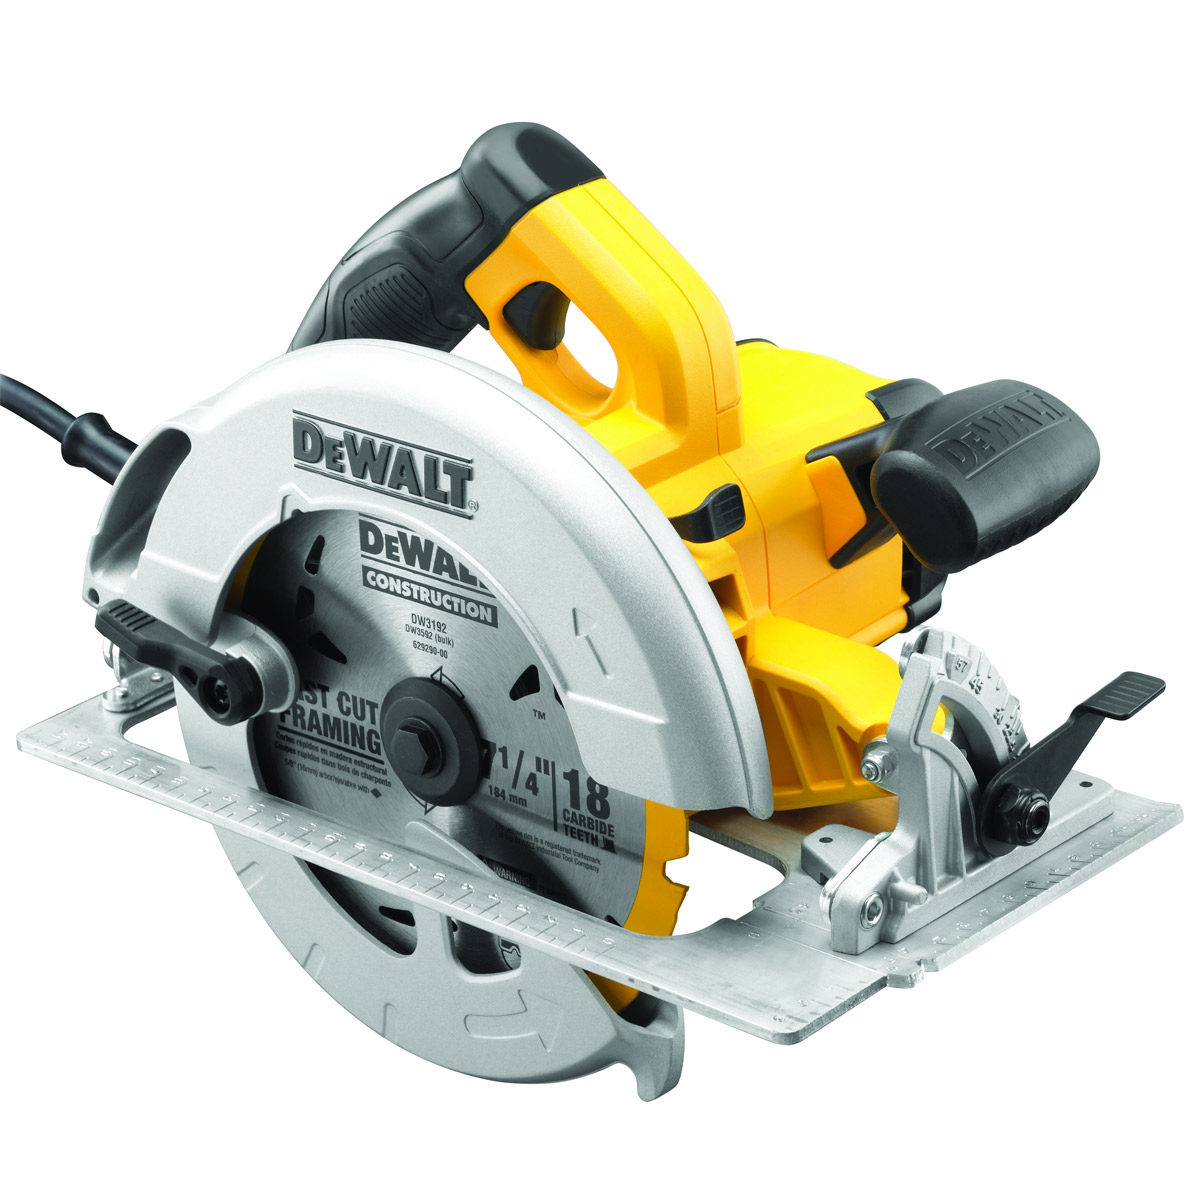 DEWALT DWE575K 190MM CIRCULAR SAW 110V